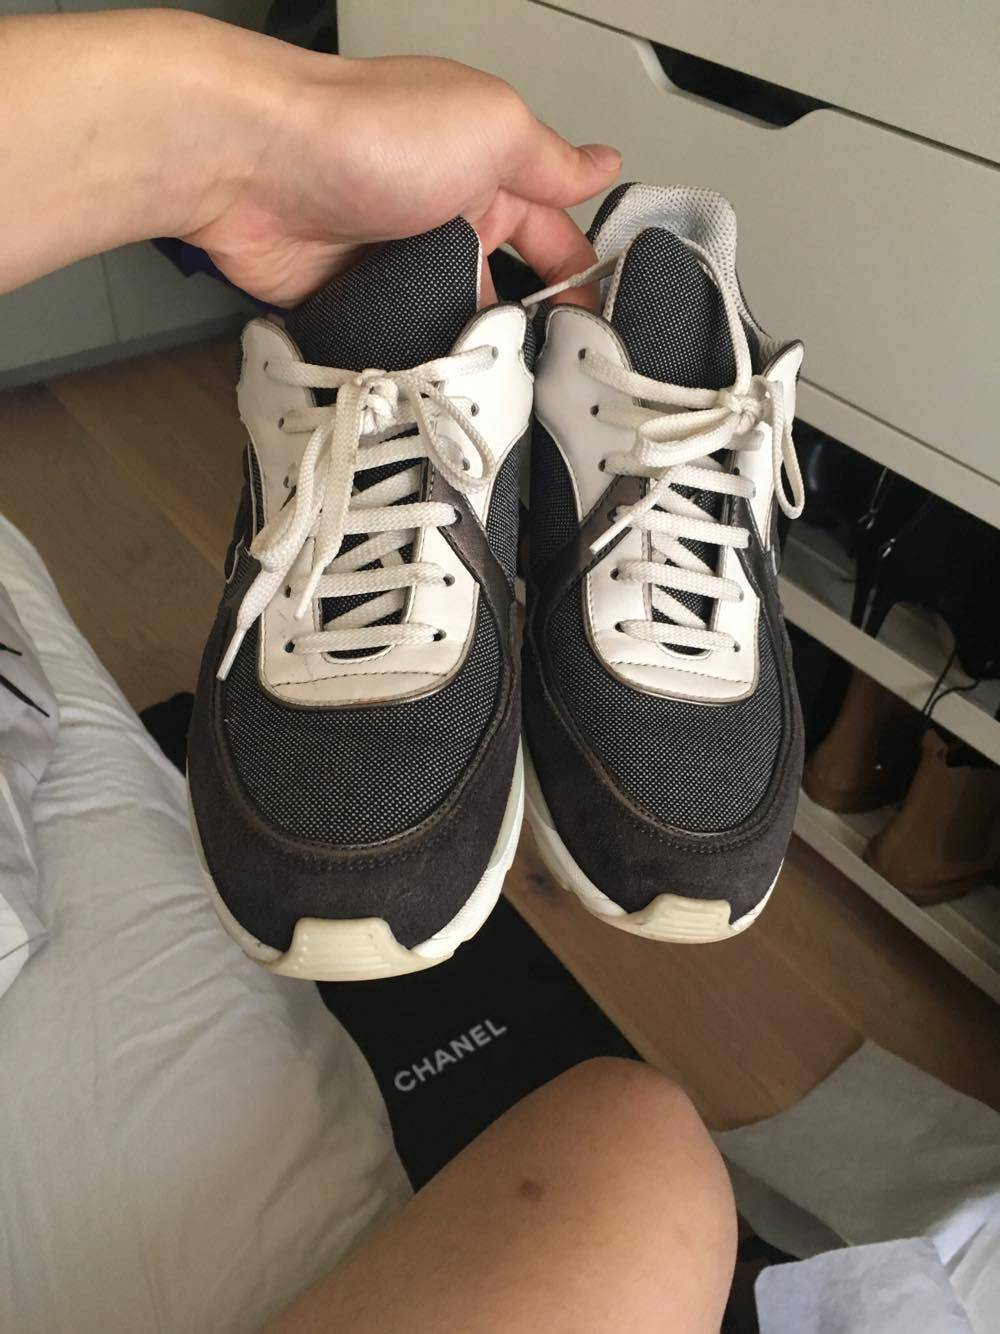 chanel runners. chanel runners size us 6.5 / eu 39 s